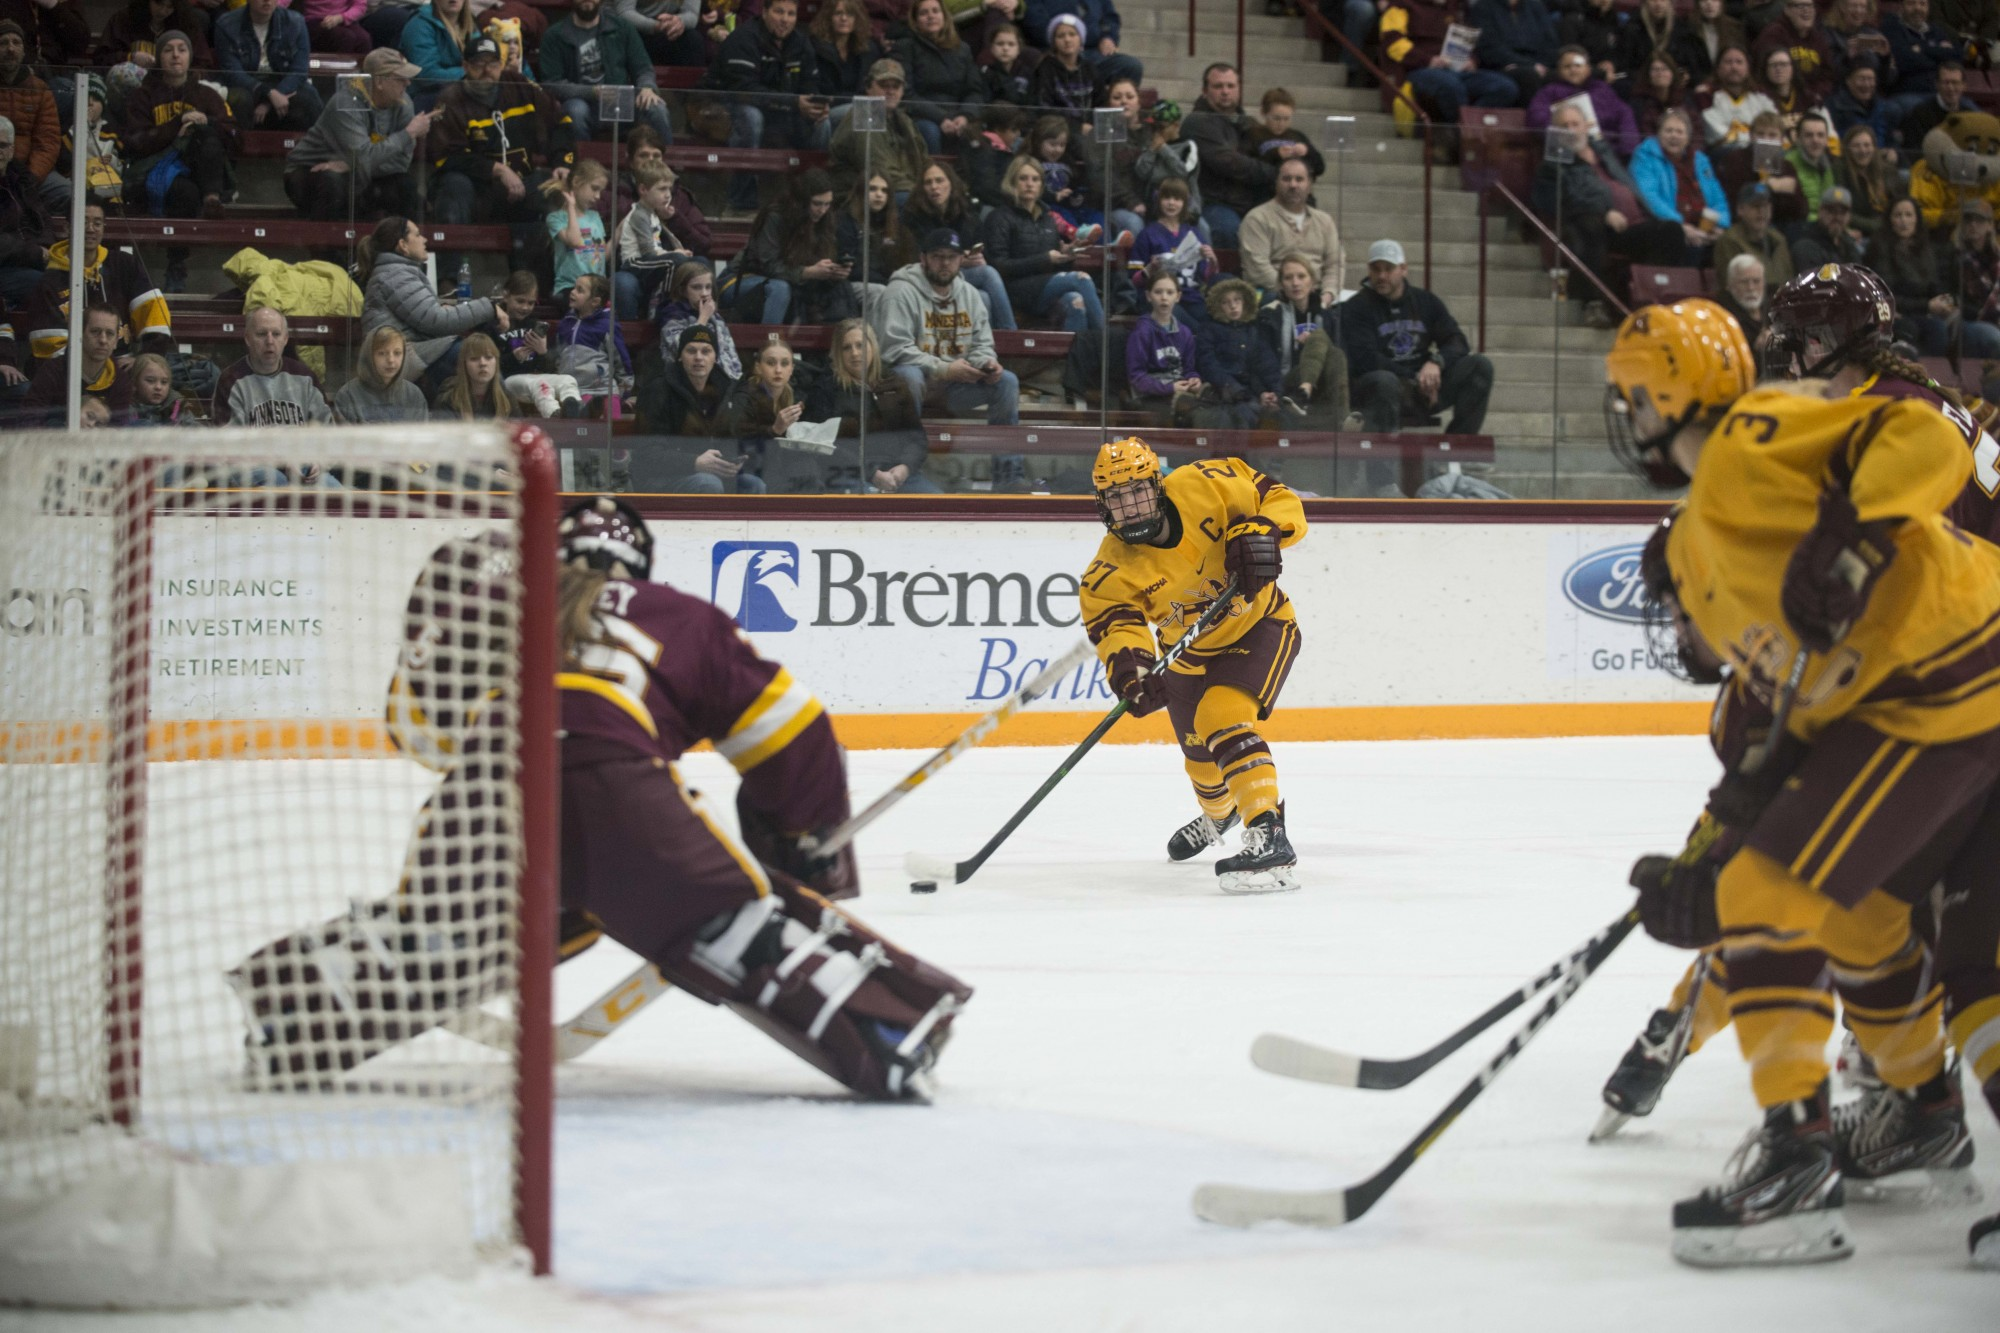 Defender Patti Marshall takes a shot on net at Ridder Arena on Saturday, Feb. 1. The Gophers lost to Minnesota Duluth 0-2.